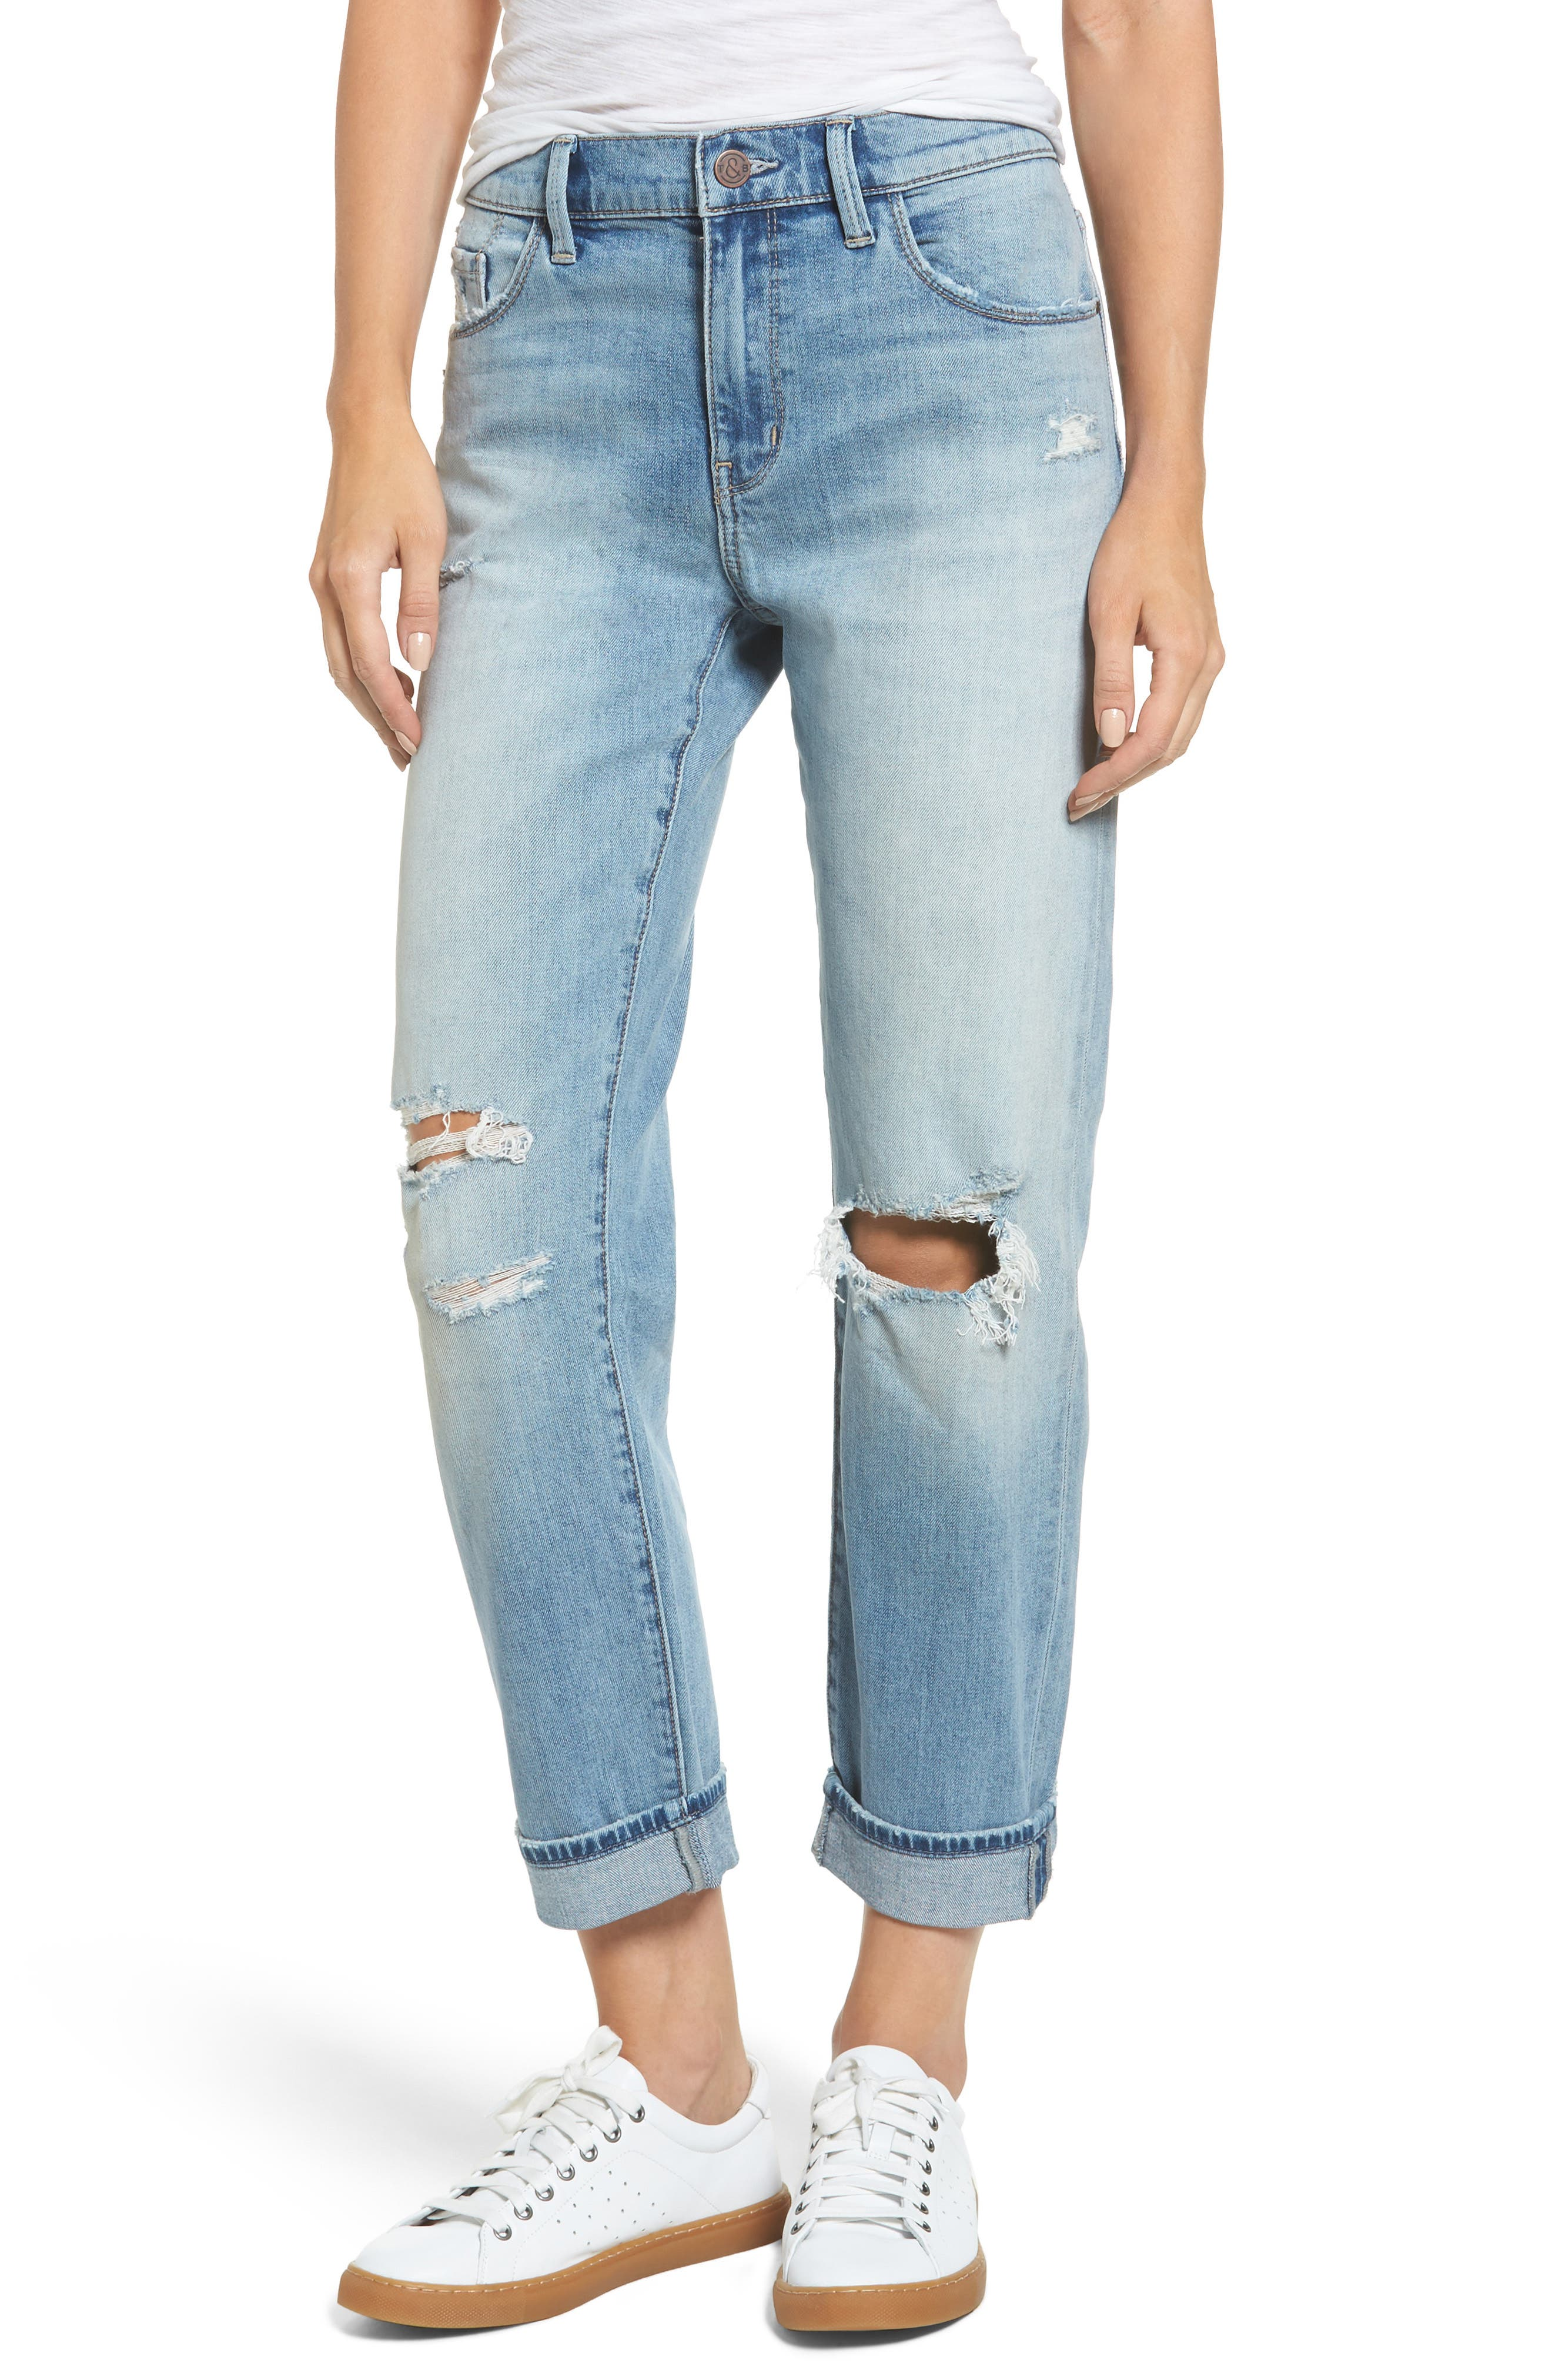 Alternate Image 1 Selected - Treasure & Bond Ripped Relaxed Fit Jeans (Gravel Light Destroy)